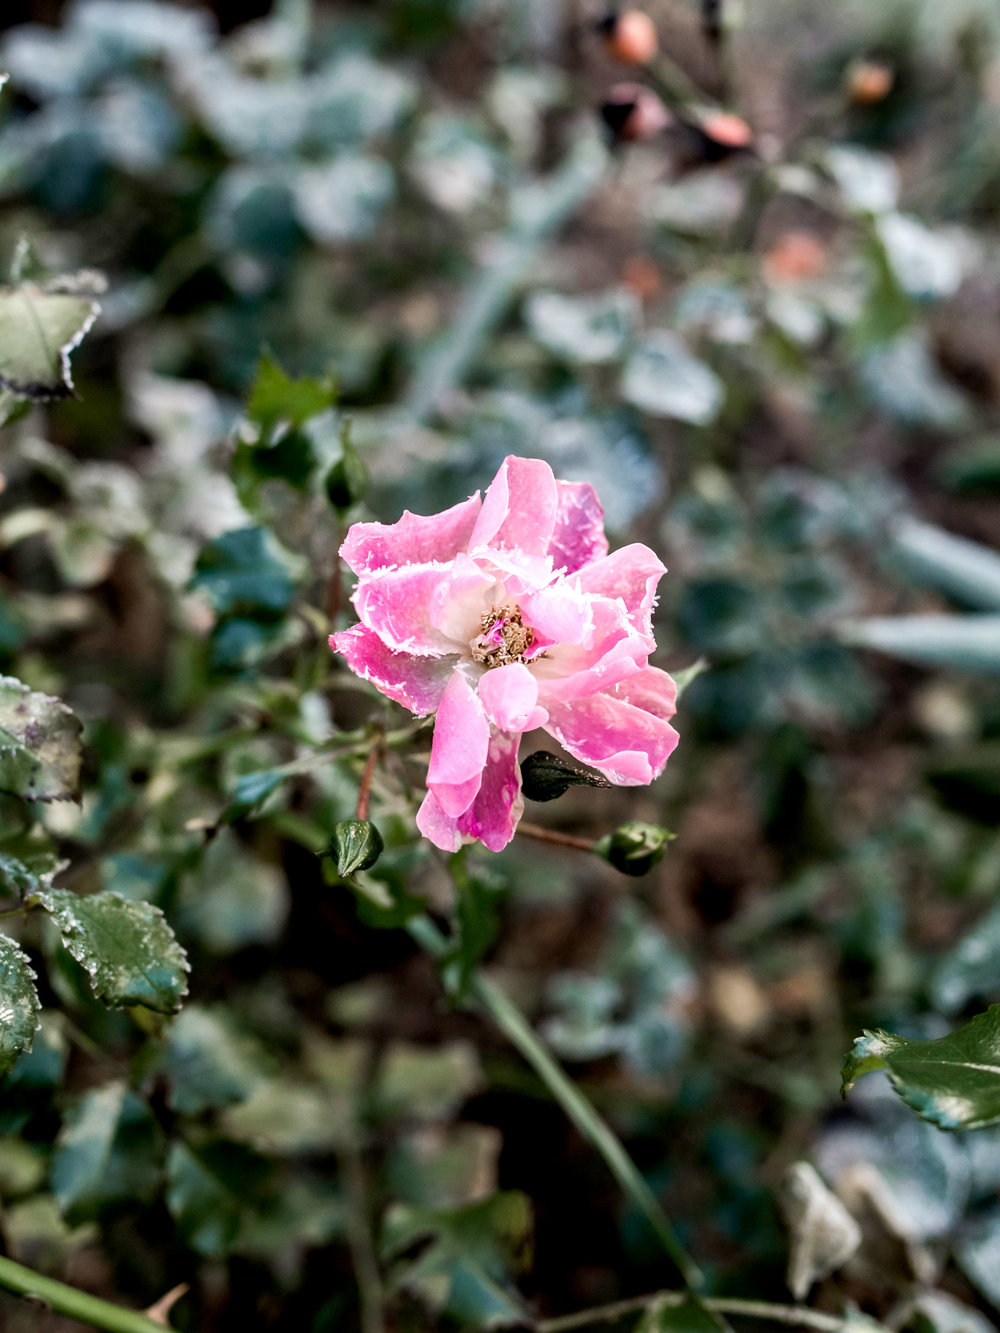 rose nature city Warsaw mindfulness enjoy relax moment photography